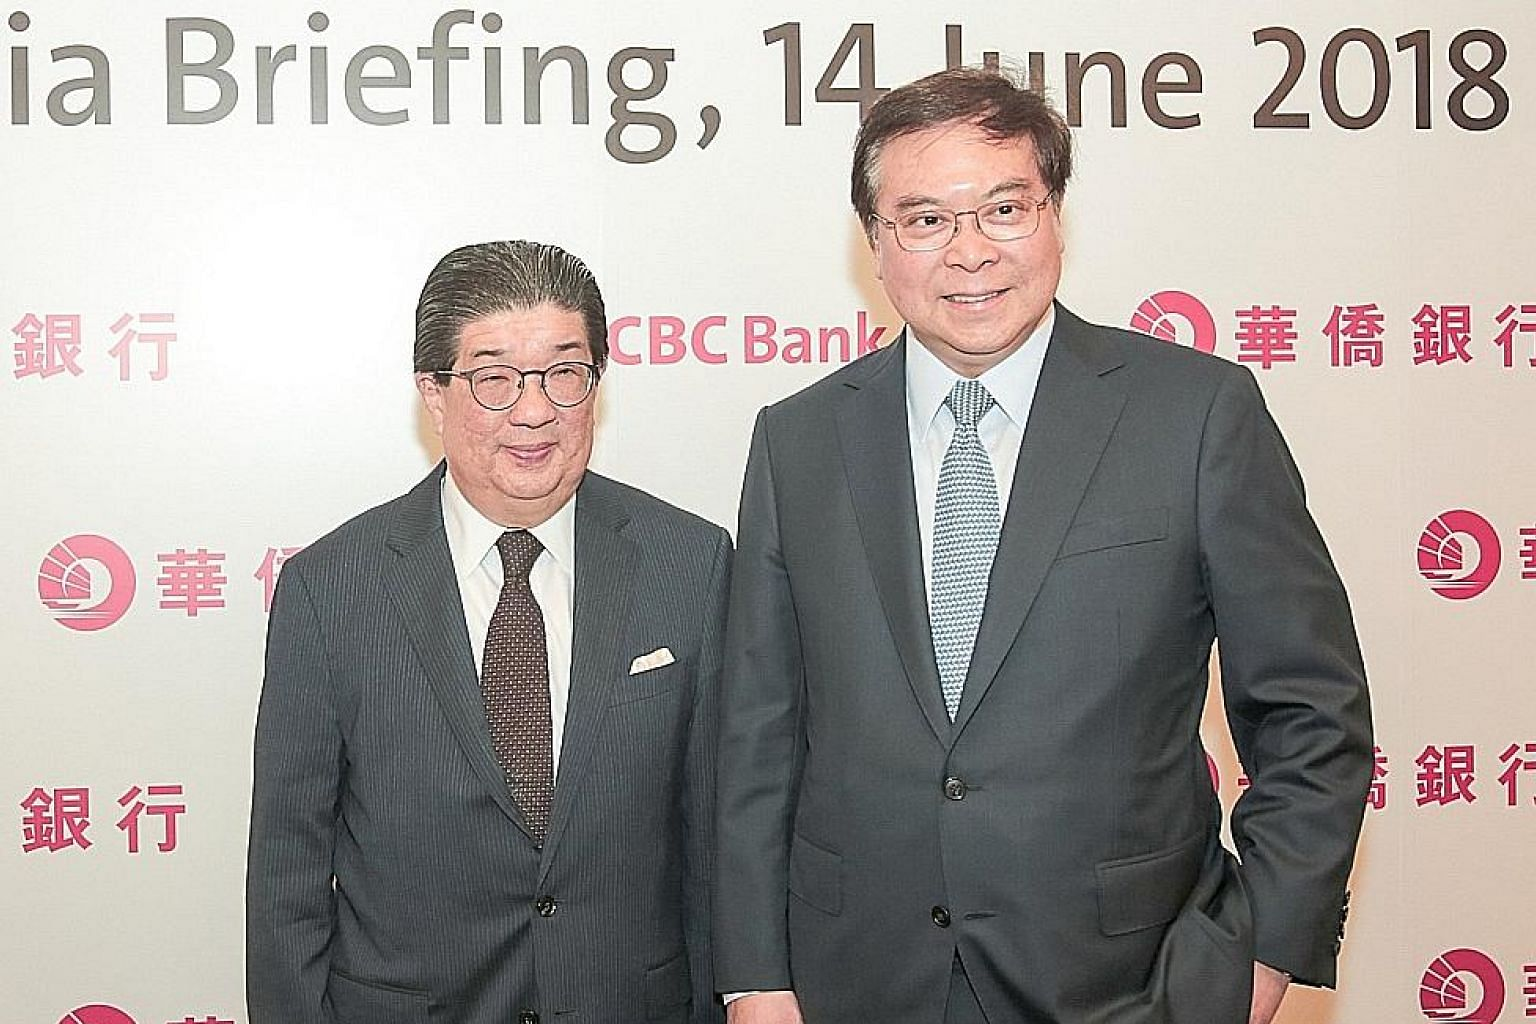 OCBC chief executive Samuel Tsien (right) with Mr Na Wu Beng, chief of subsidiary OCBC Wing Hang Bank, at a briefing last week.